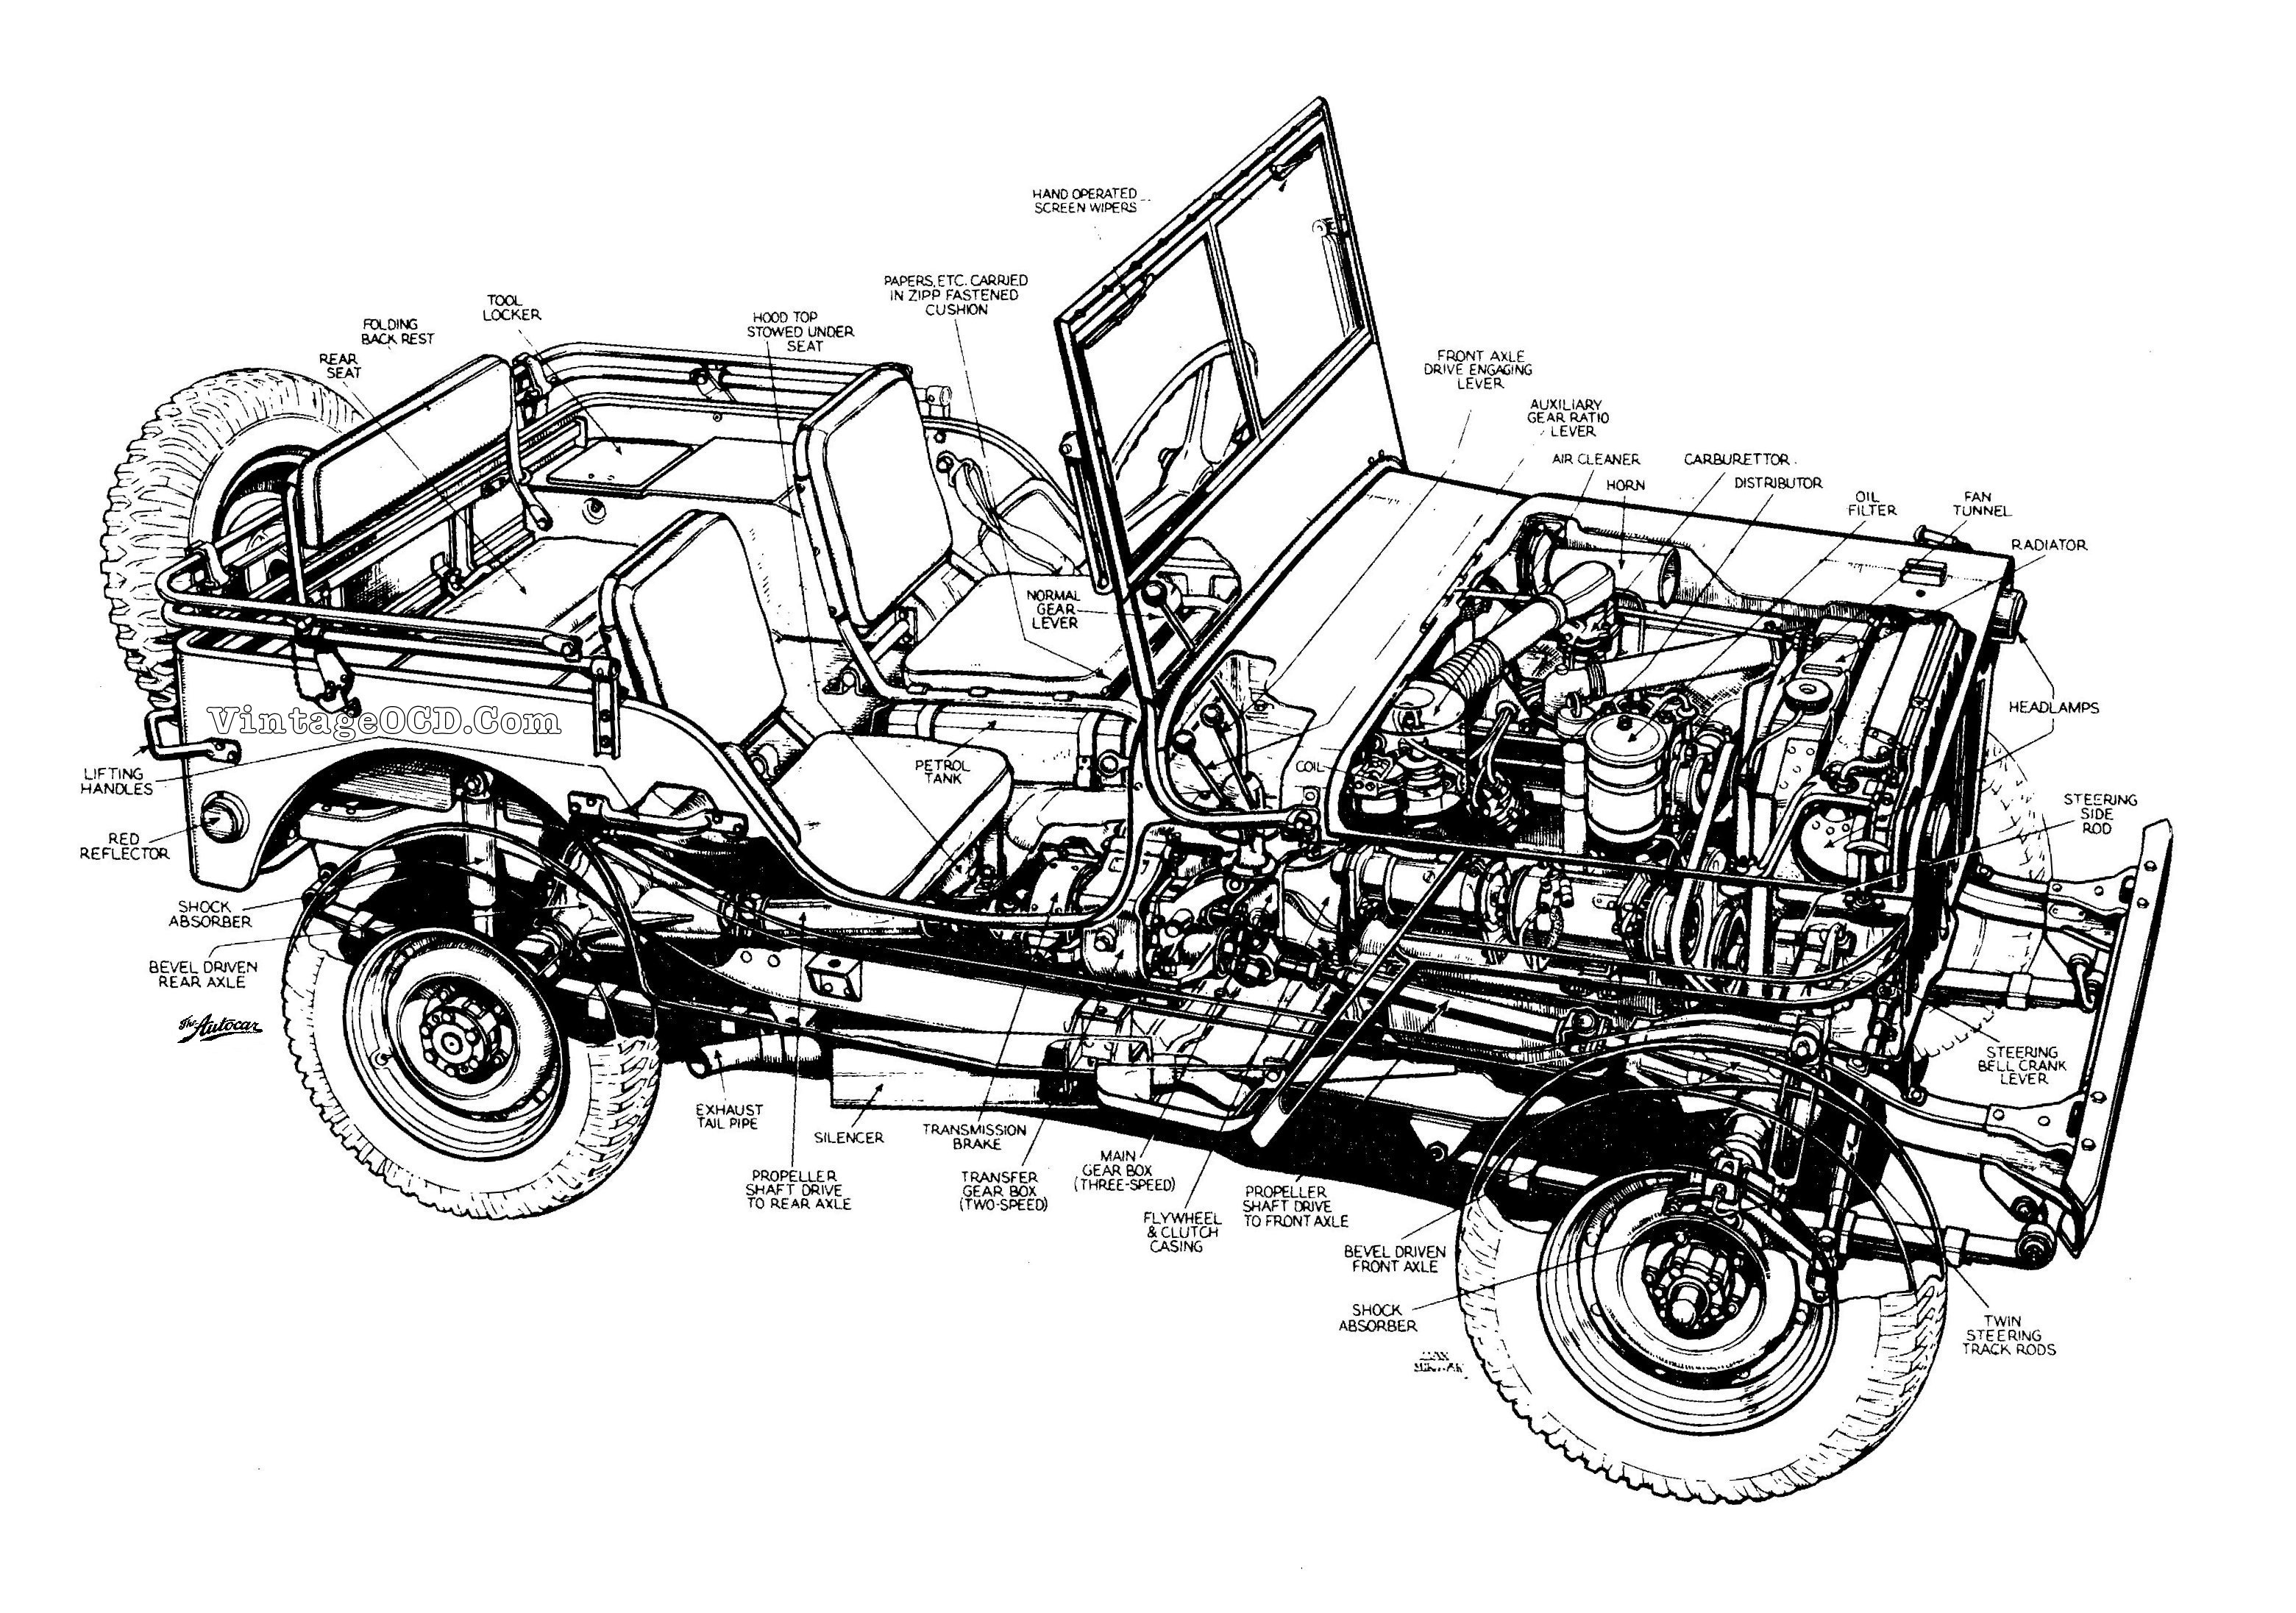 1952 Willys Wagon Wiring Diagram Library Jeep Cj7 Fuse Cj2 Get Free Image About 1964 Pickup